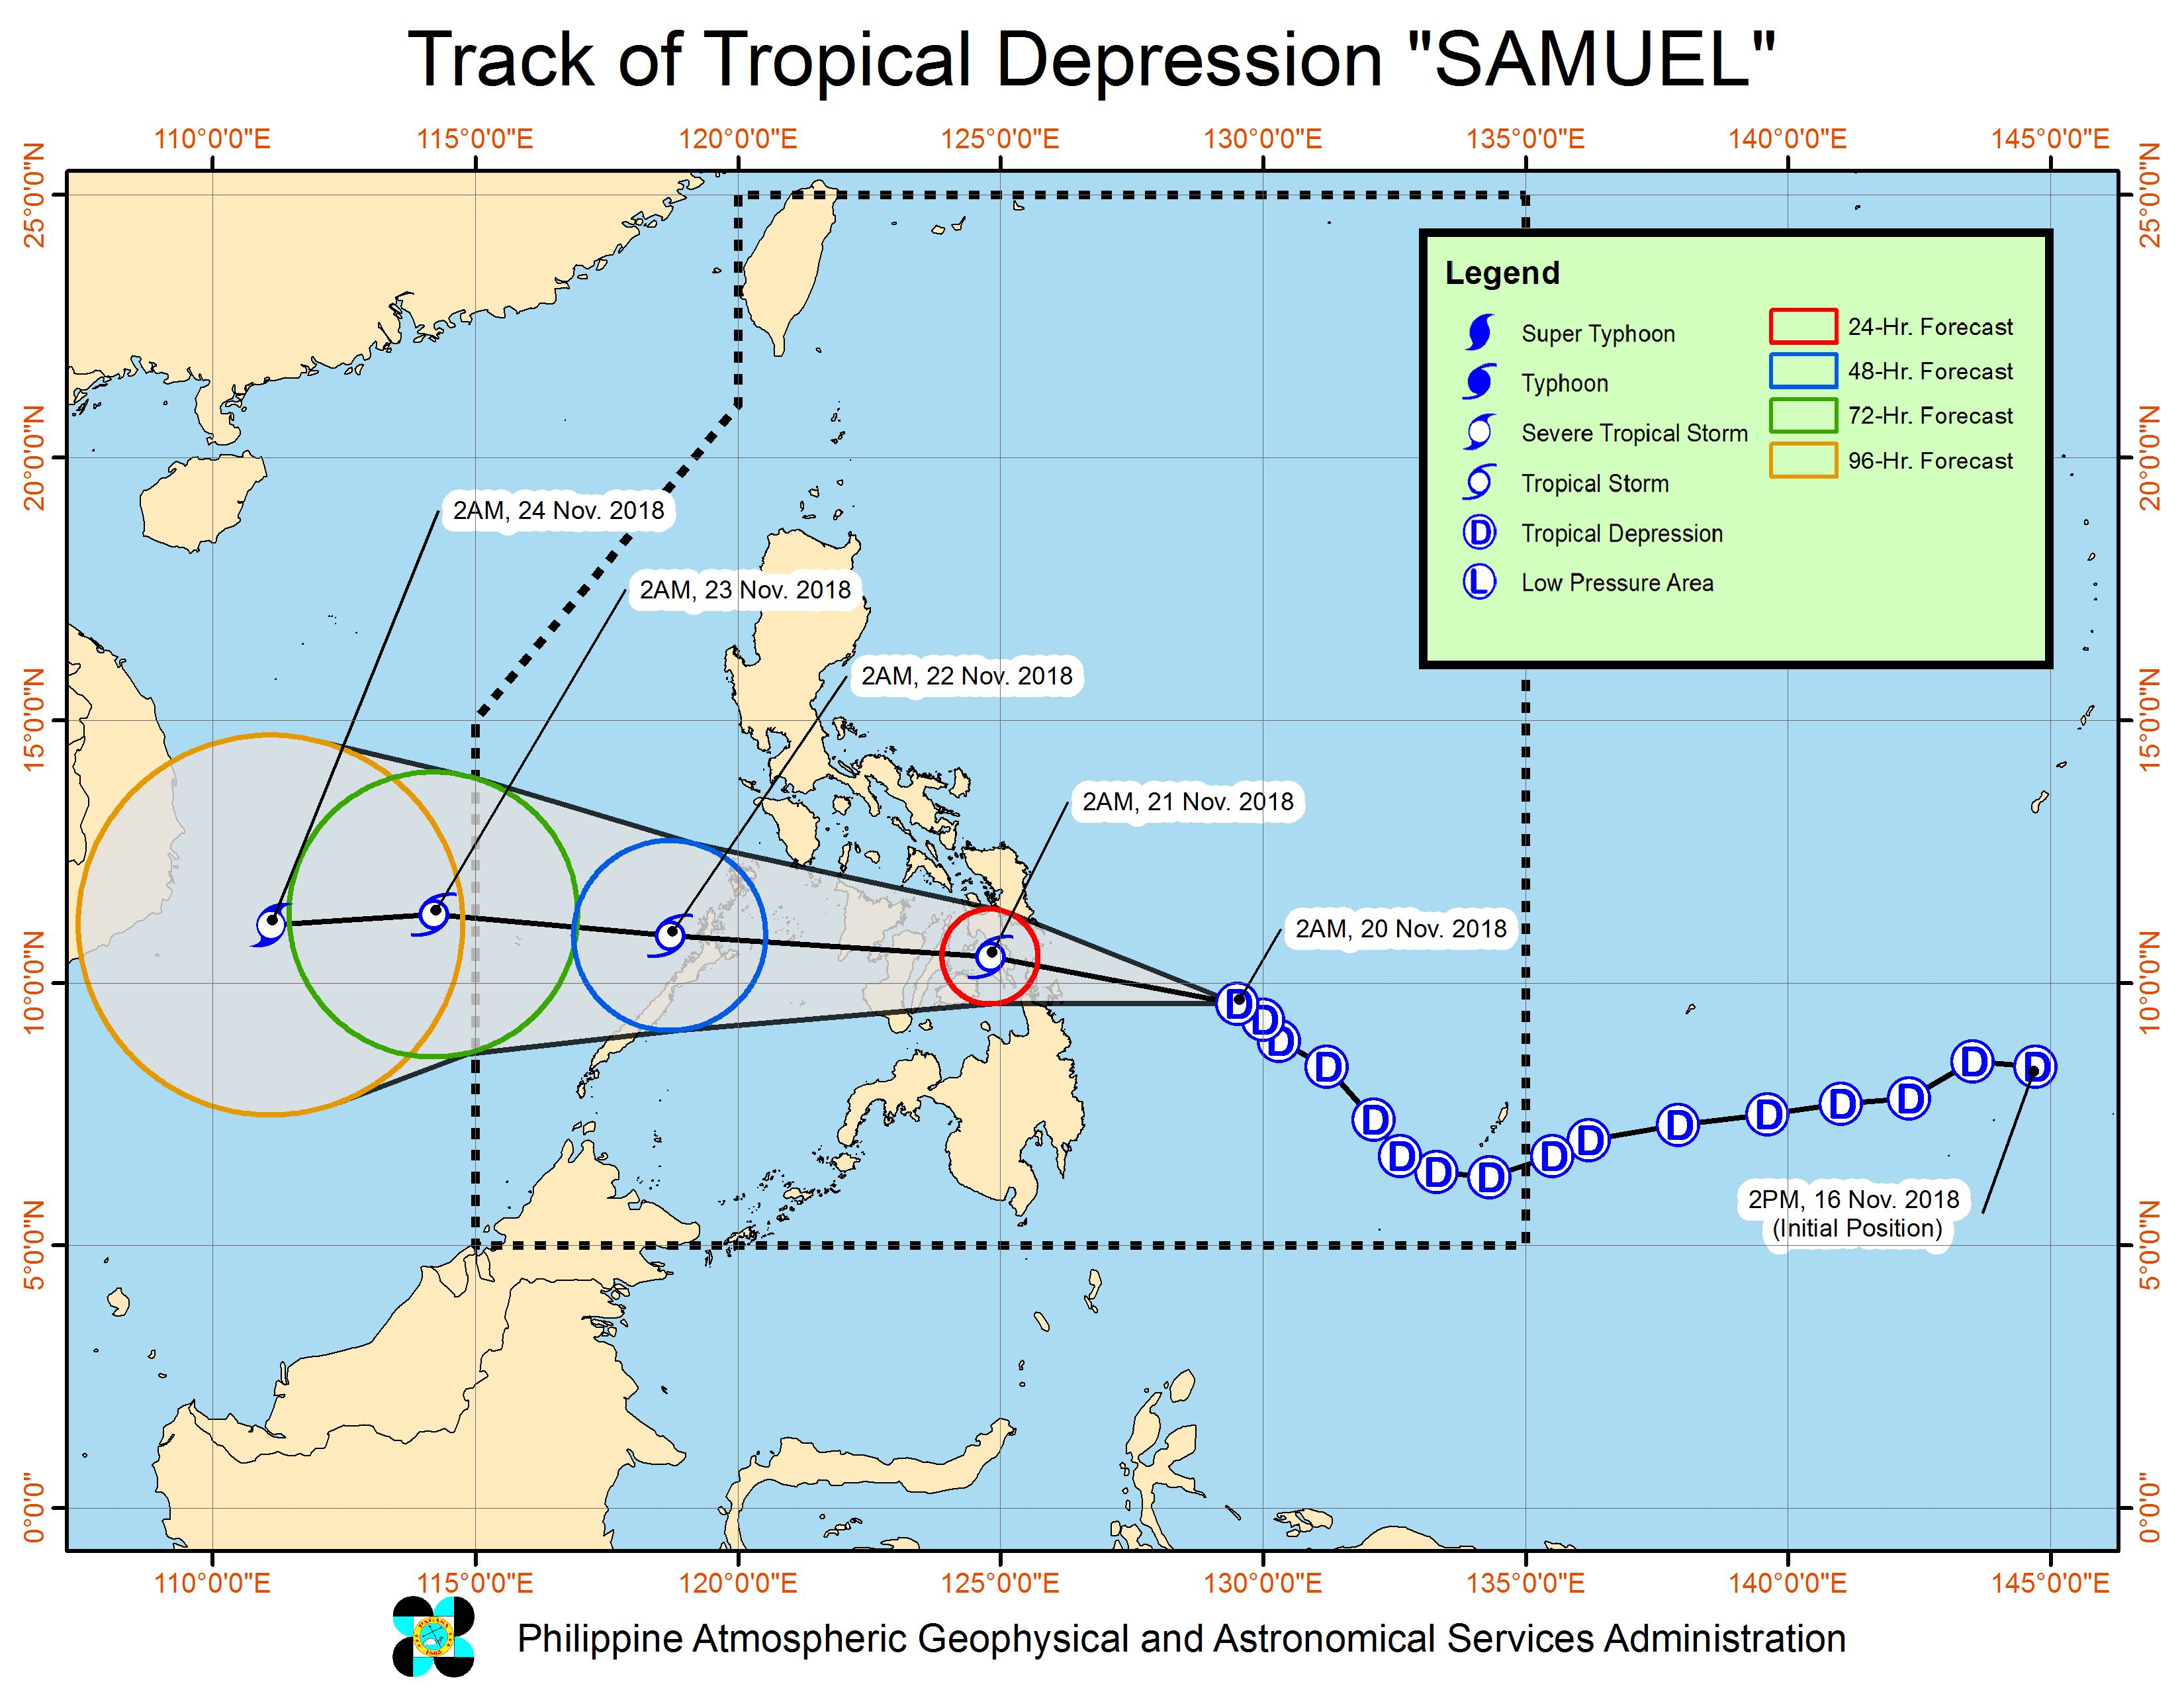 Forecast track of Tropical Depression Samuel as of November 20, 2018, 5 am. Image from PAGASA